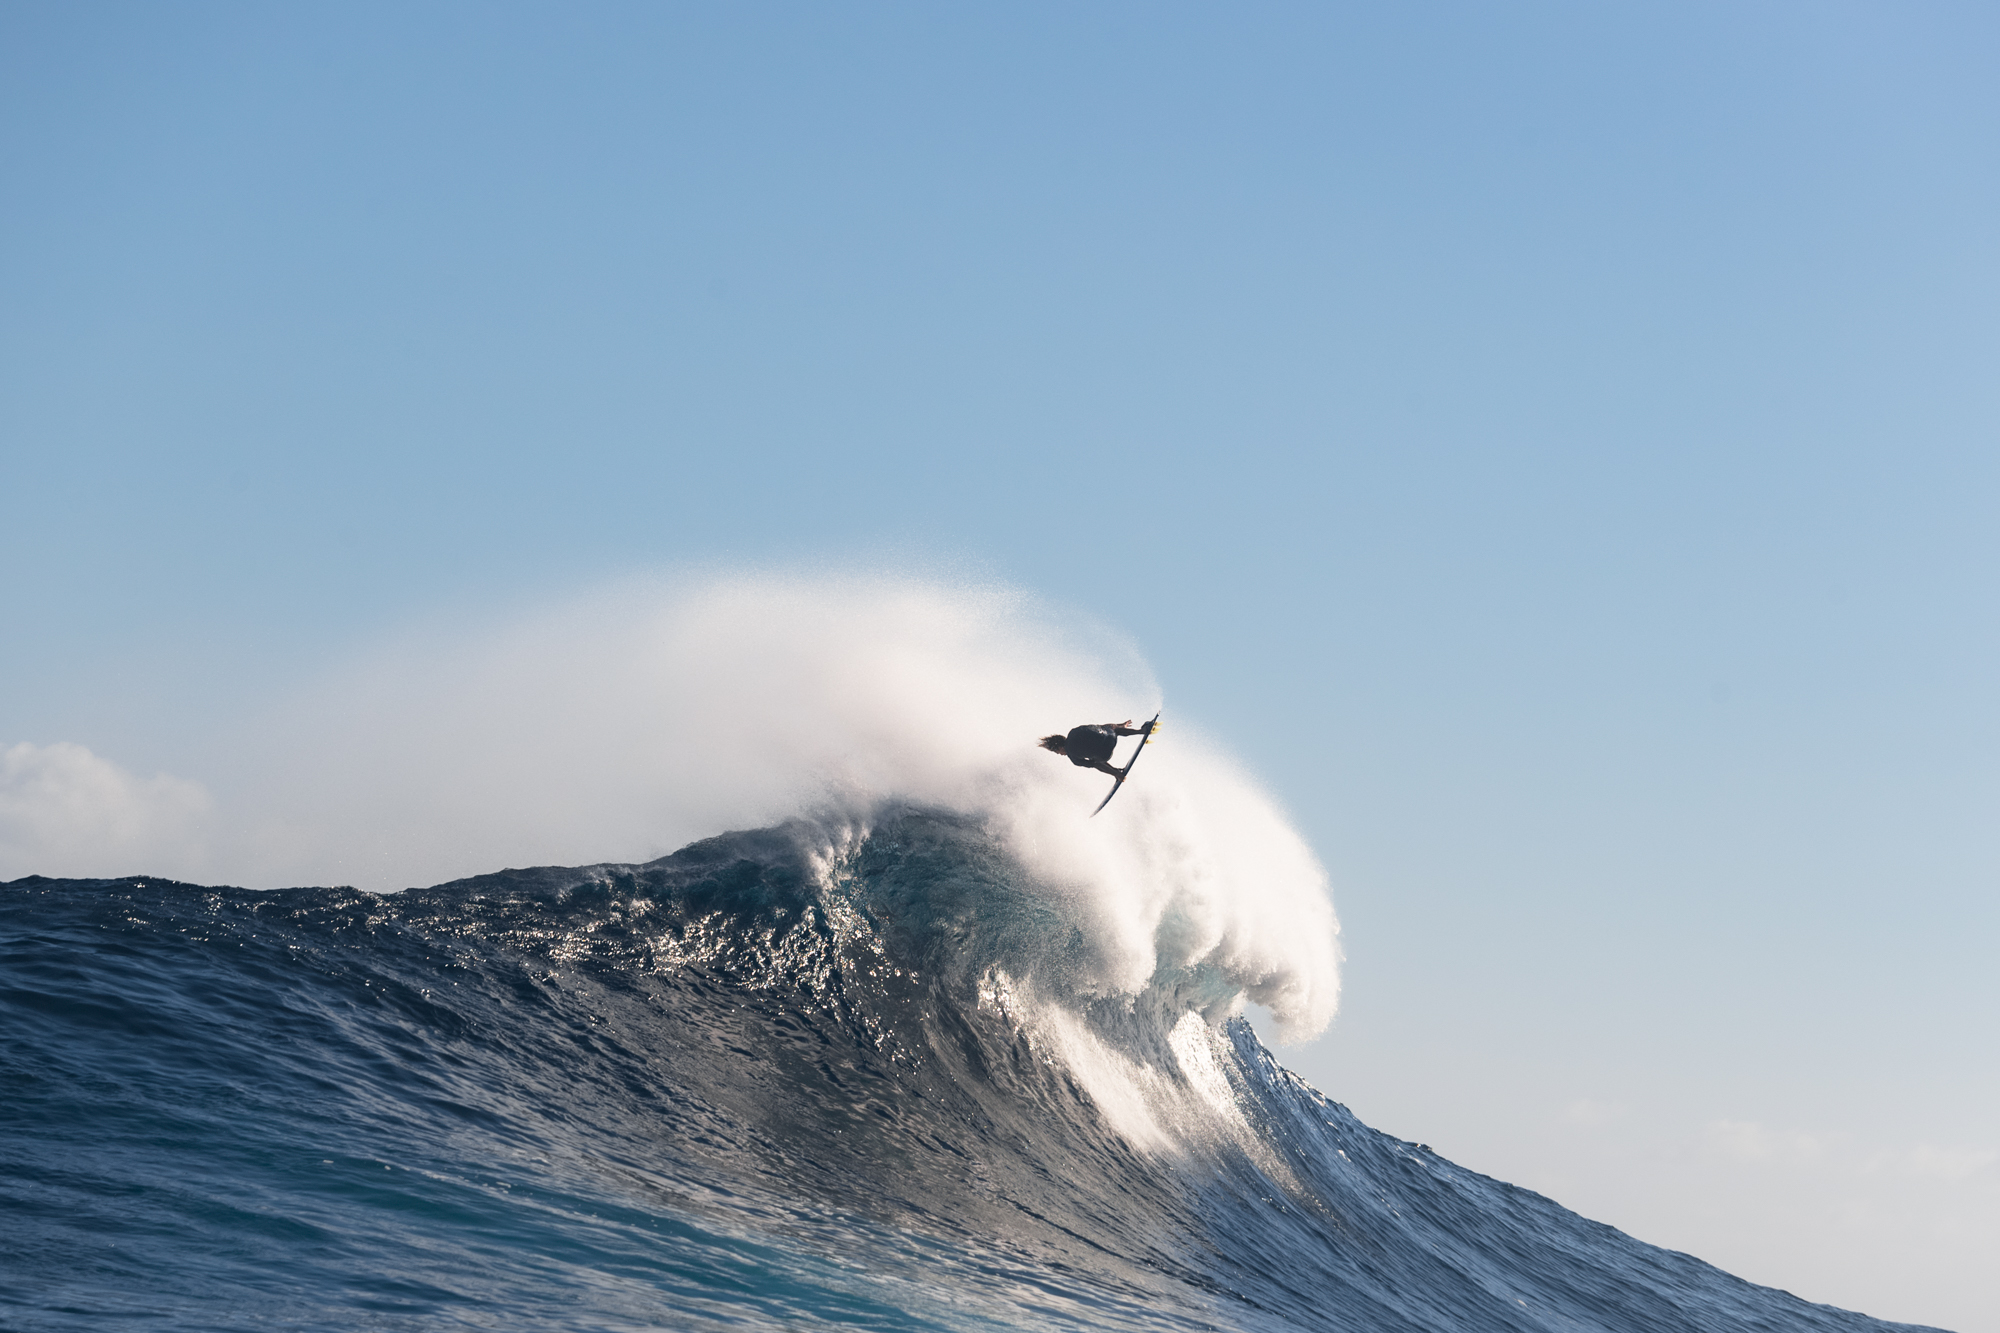 Kai Lenny, taking a novel approach at Jaws earlier this season.